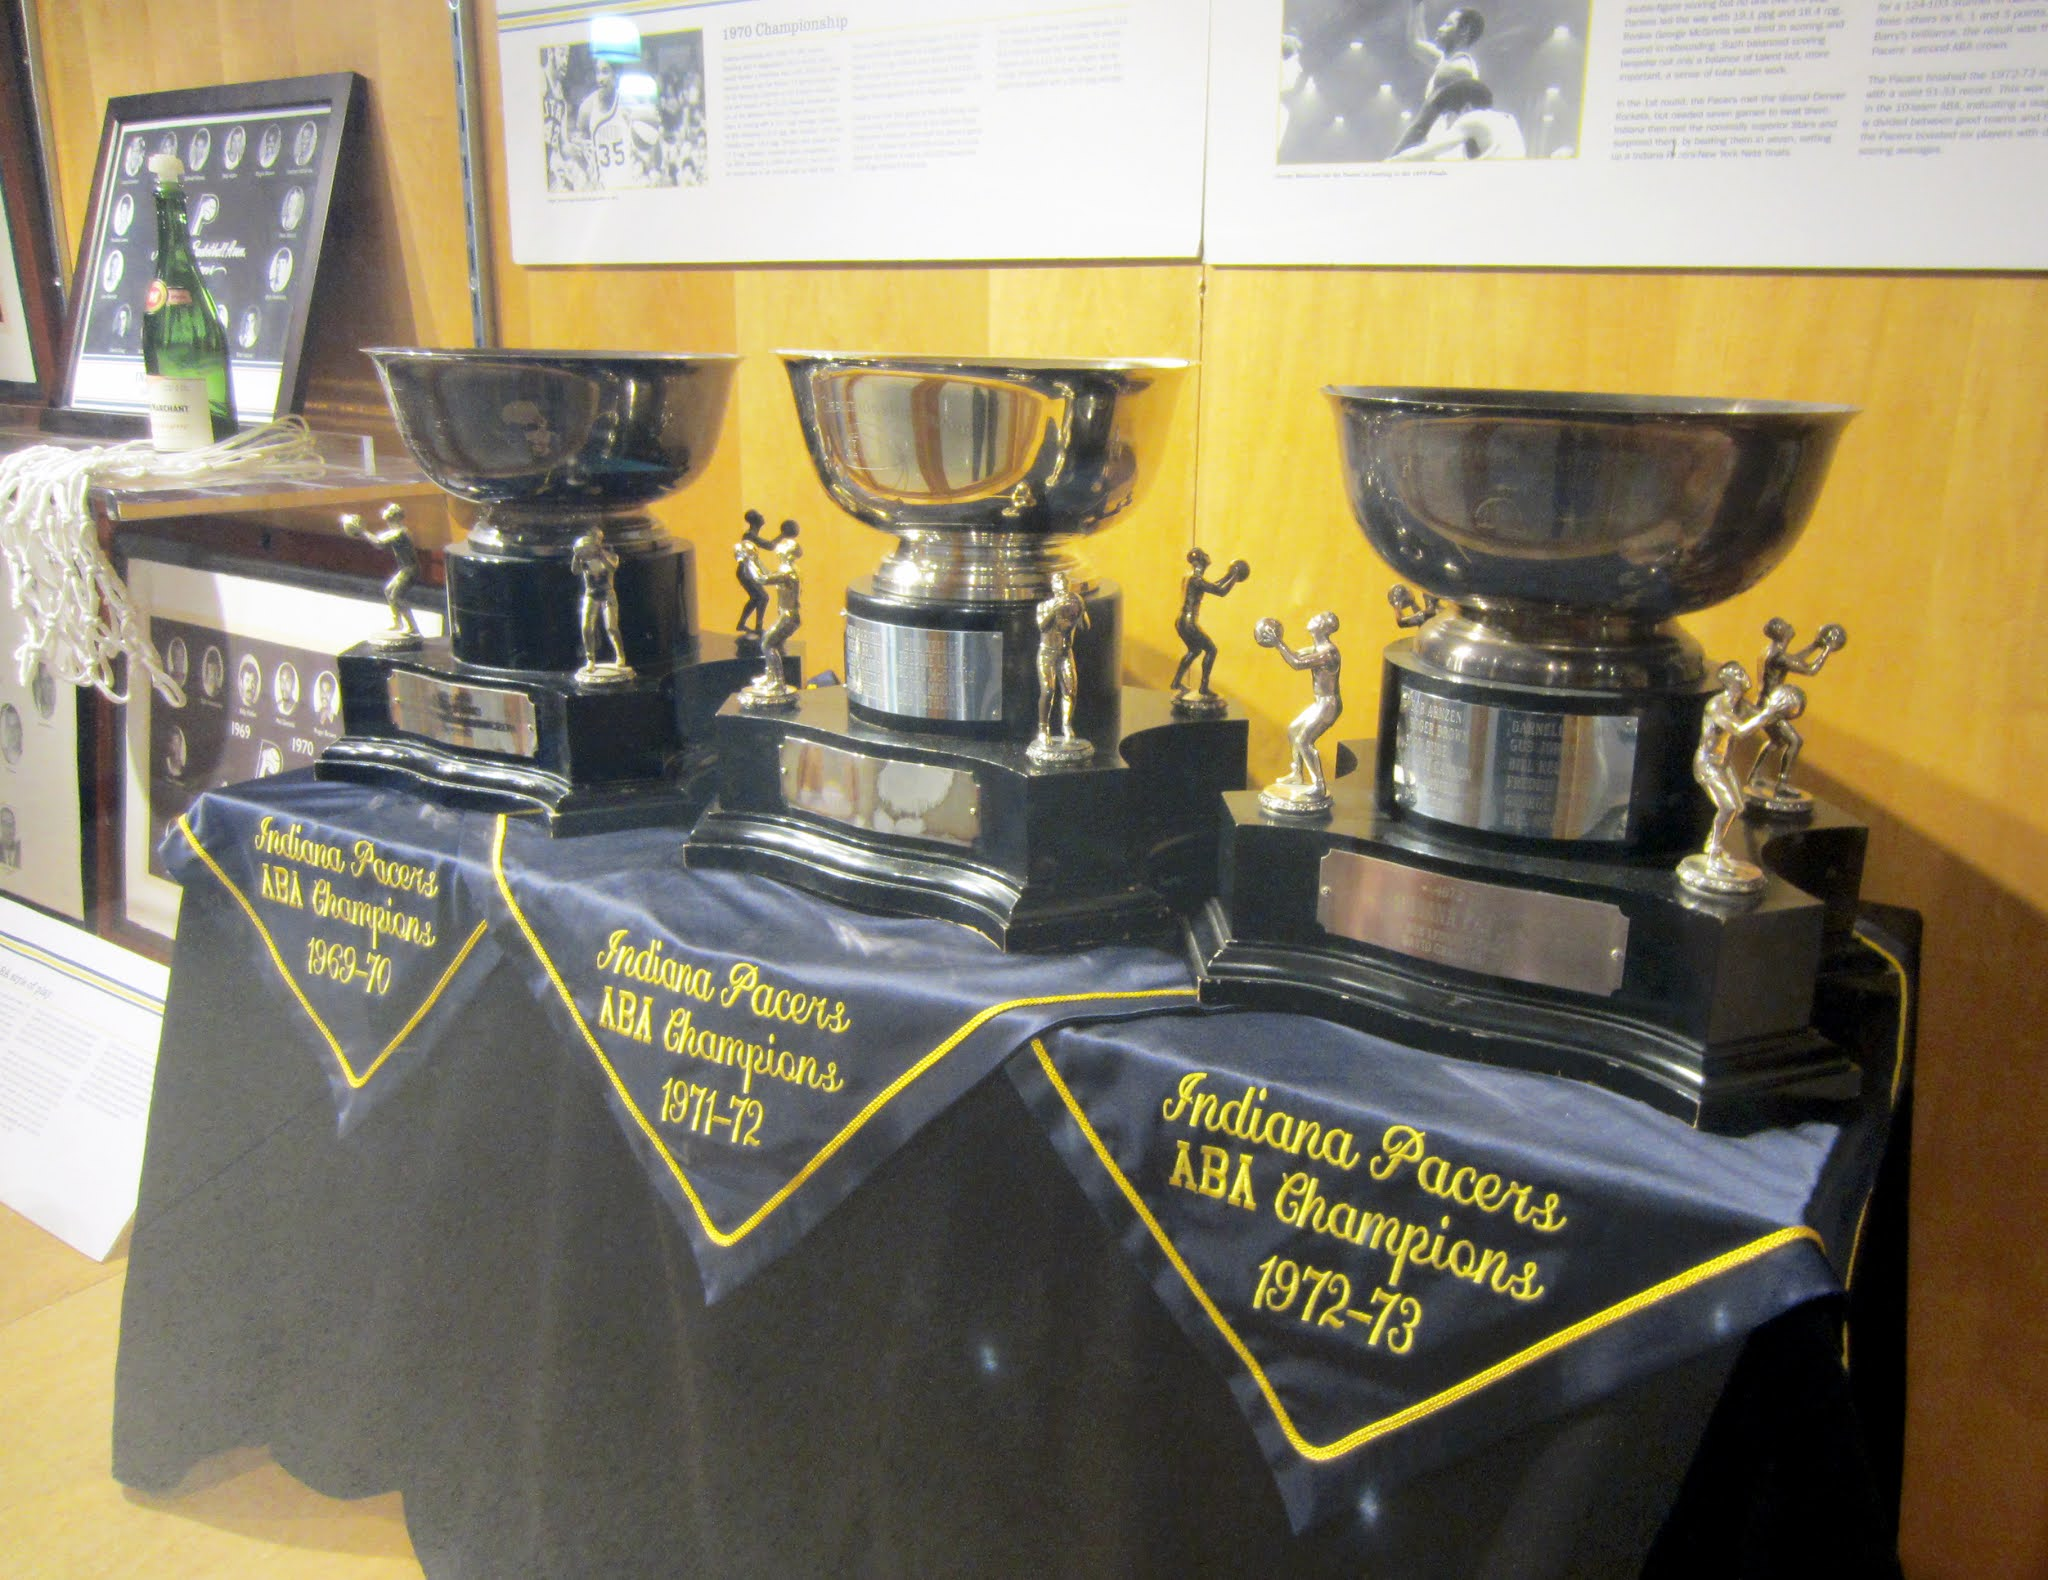 The Indiana Pacers ABA Championship trophies on display at Bankers Life Fieldhouse